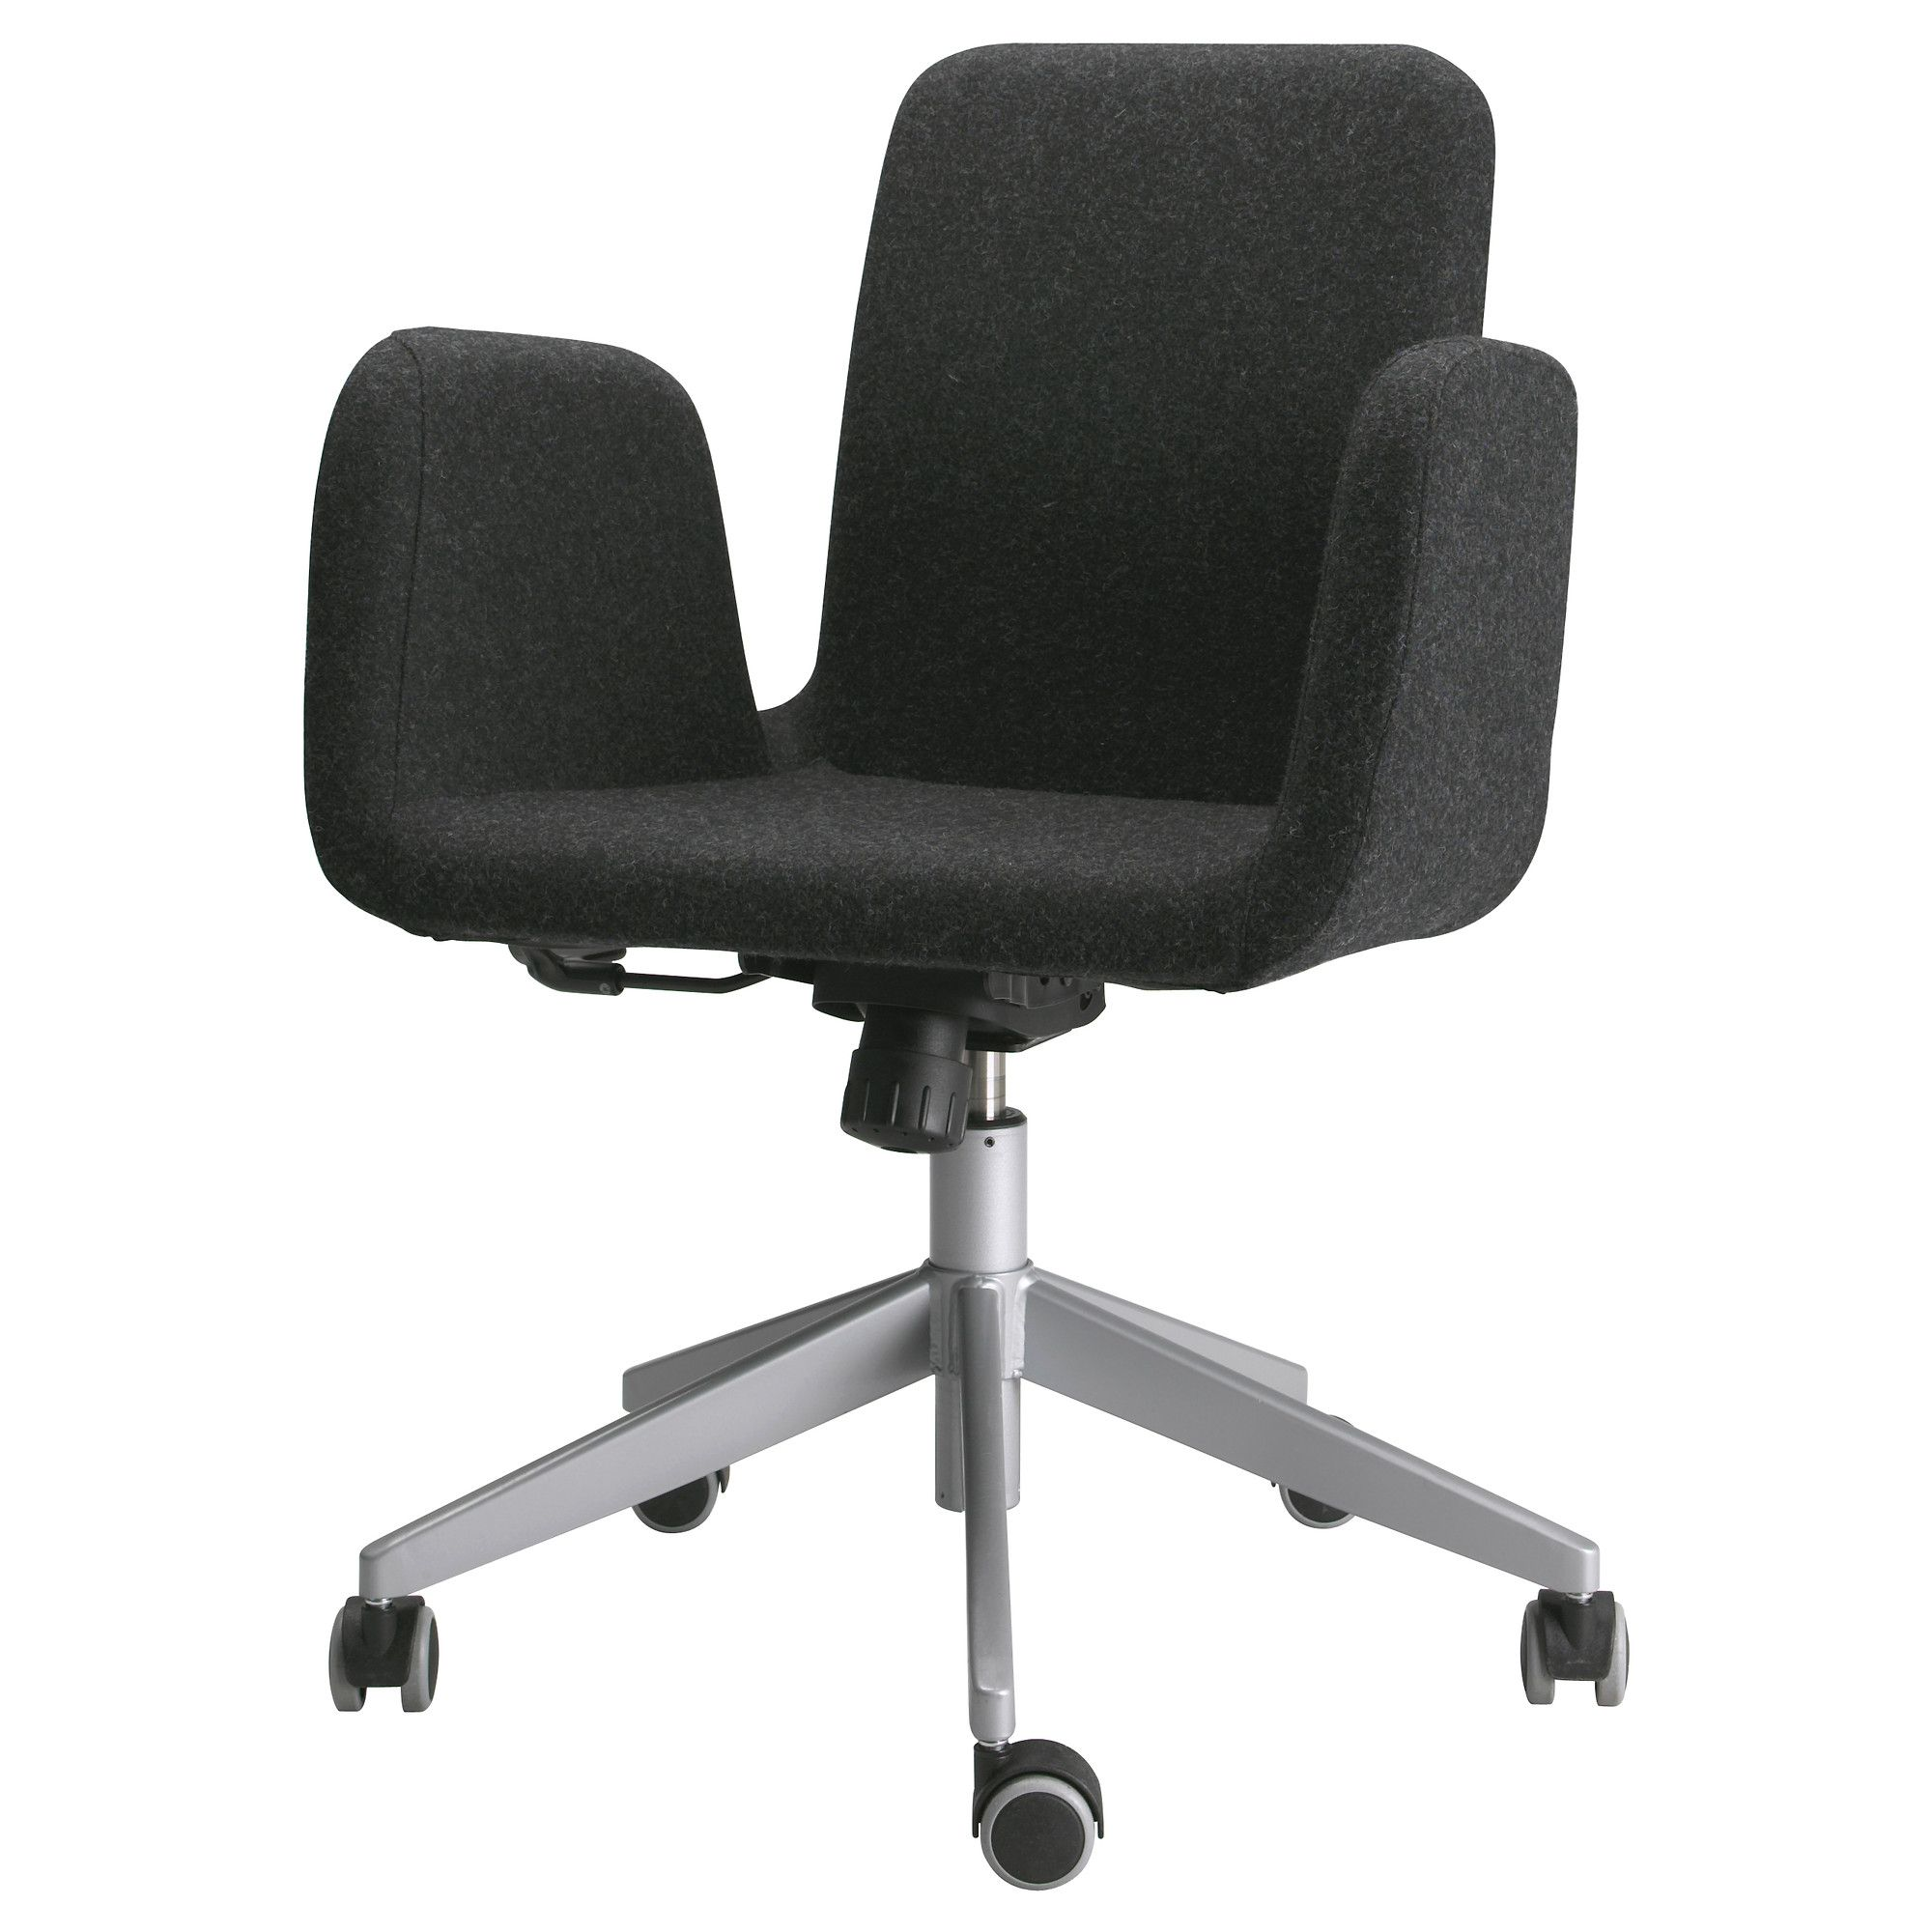 Merveilleux PATRIK Swivel Chair   IKEA